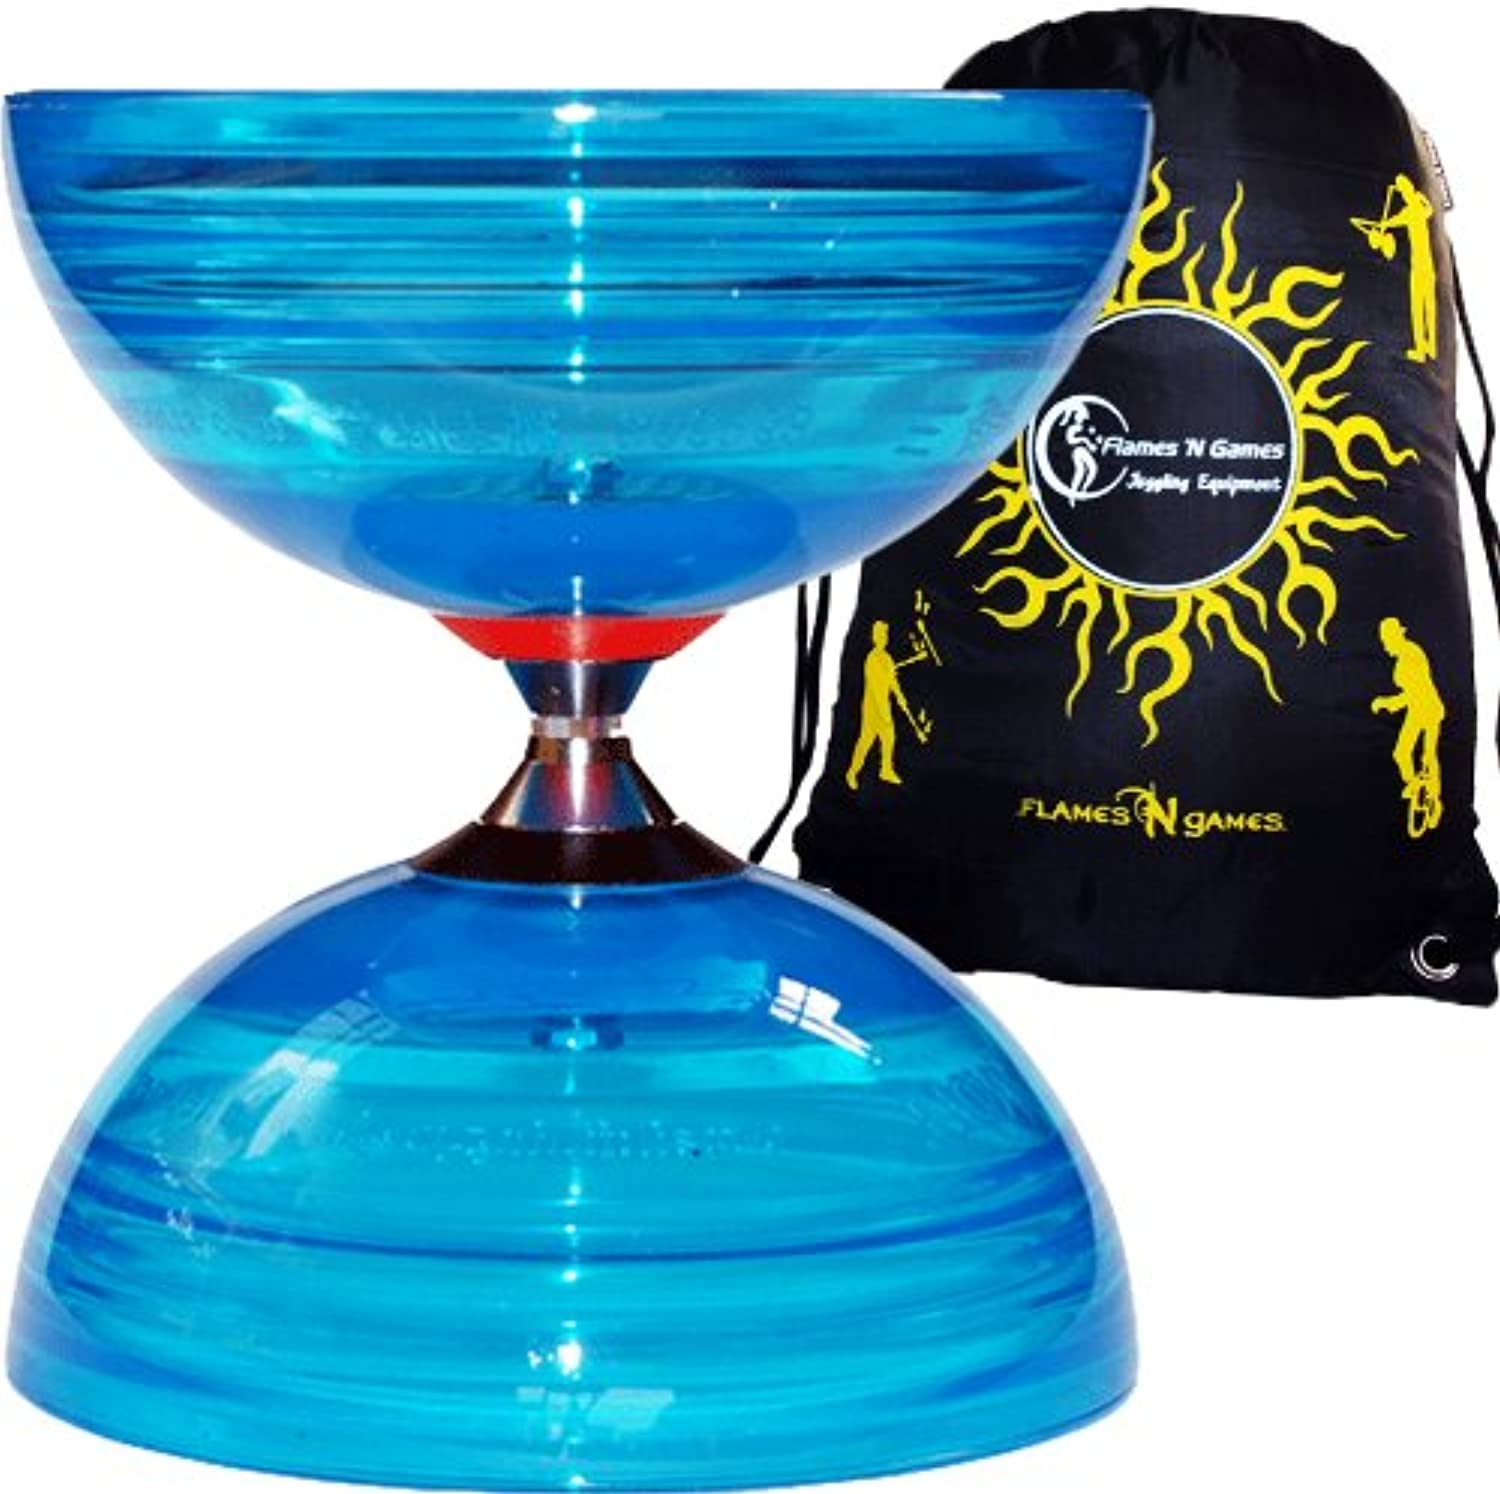 Sundia SHINING PRO Triple Bearing Diabolo (bluee) + Fabric Diablo Travel Bag. TOP OF THE RANGE DIABOLO No Diabolo Sticks or String Included.